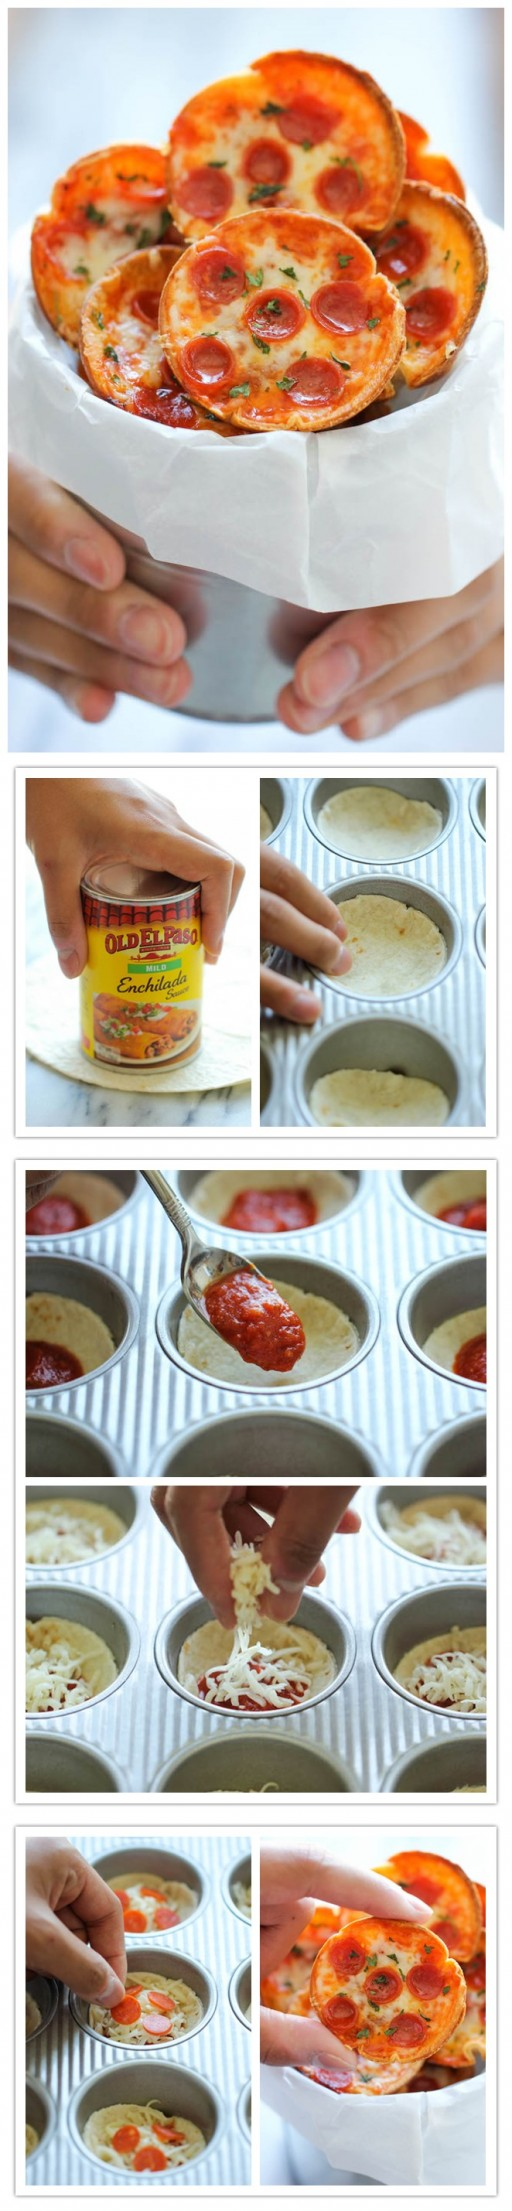 Super Cute Mini Pizza Recipe 1